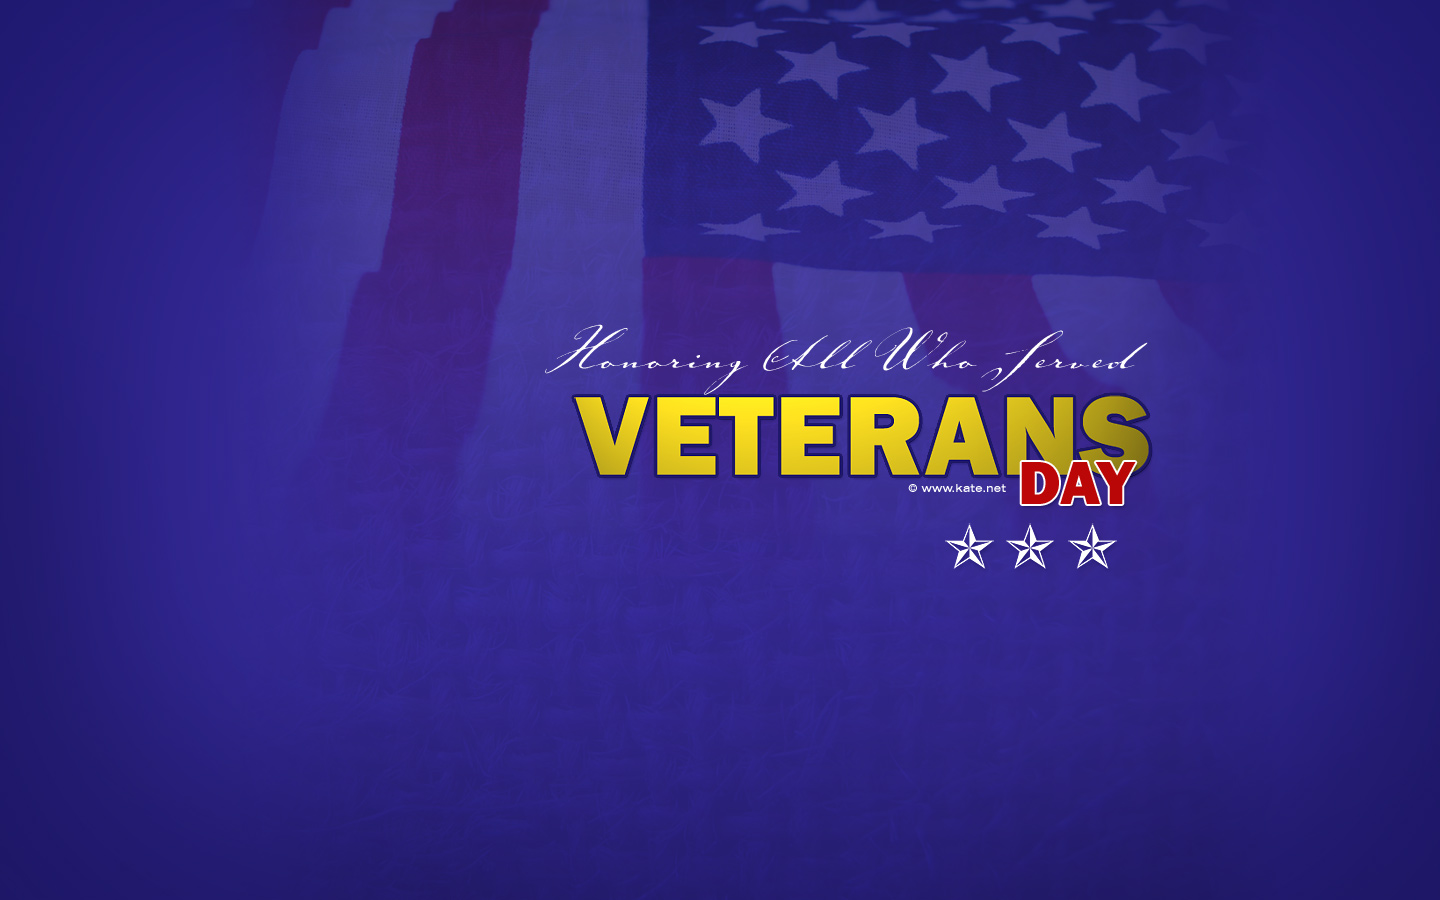 Veterans Day Wallpapers And Facebook Covers History On Kate